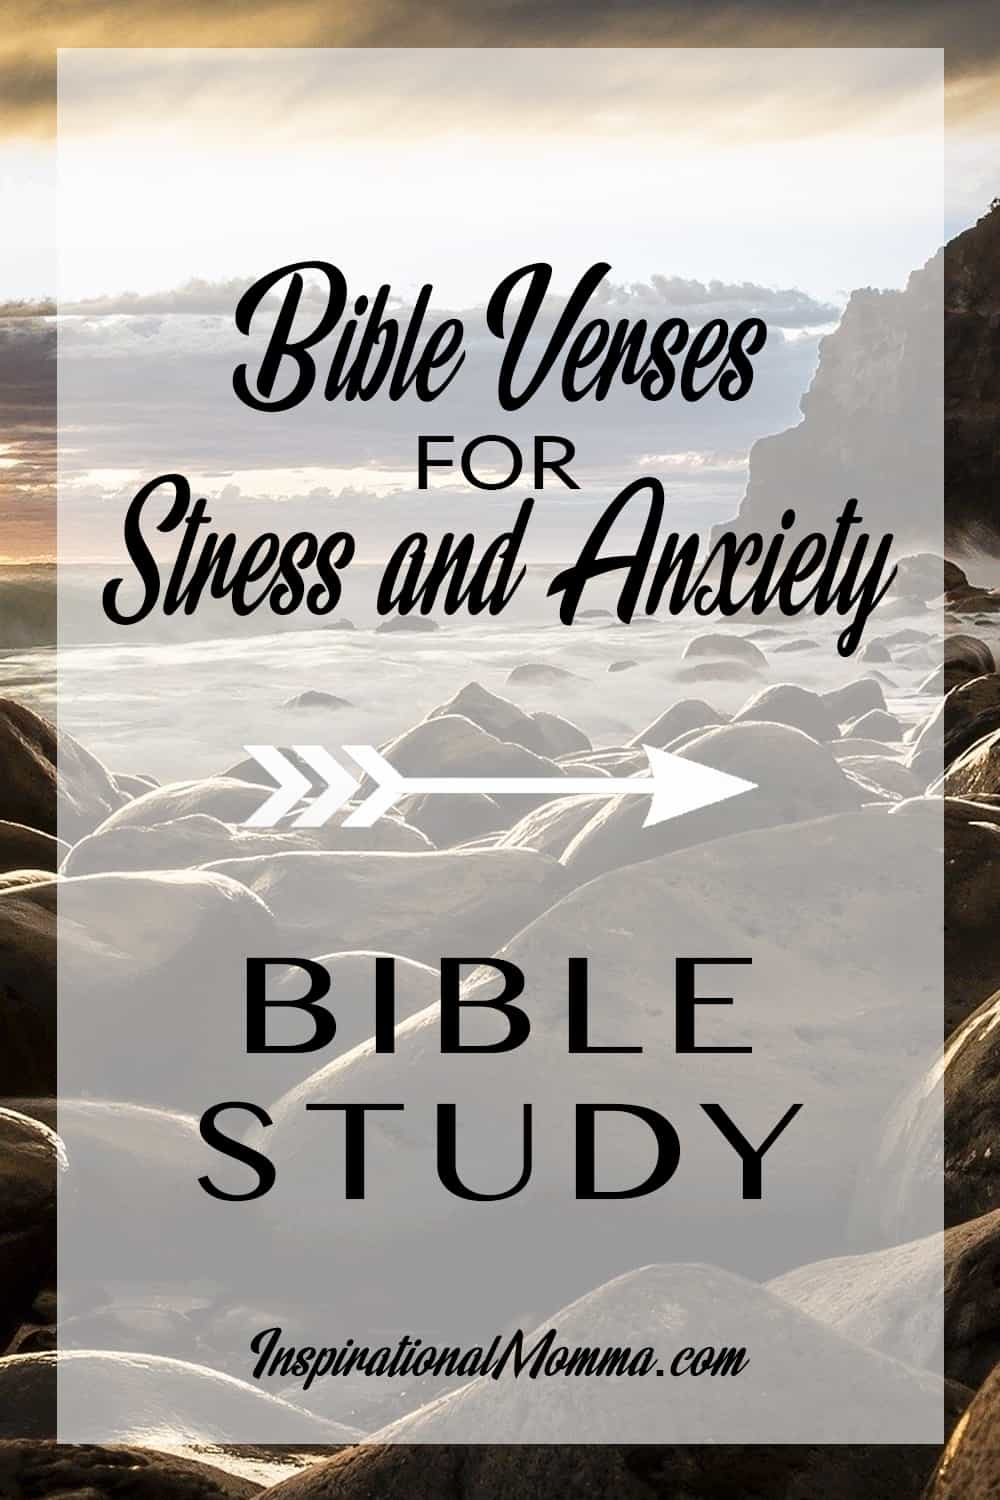 Lean and rely on these Bible Verses for Stress and Anxiety. God's Word provides us with guidance, peace, and strength during tough times. #InspirationalMomma #faith #buildingfaith #biblestudy #bibeversesforstressandanxiety #stress #anxiety #frustrations #God #Jesus #bible